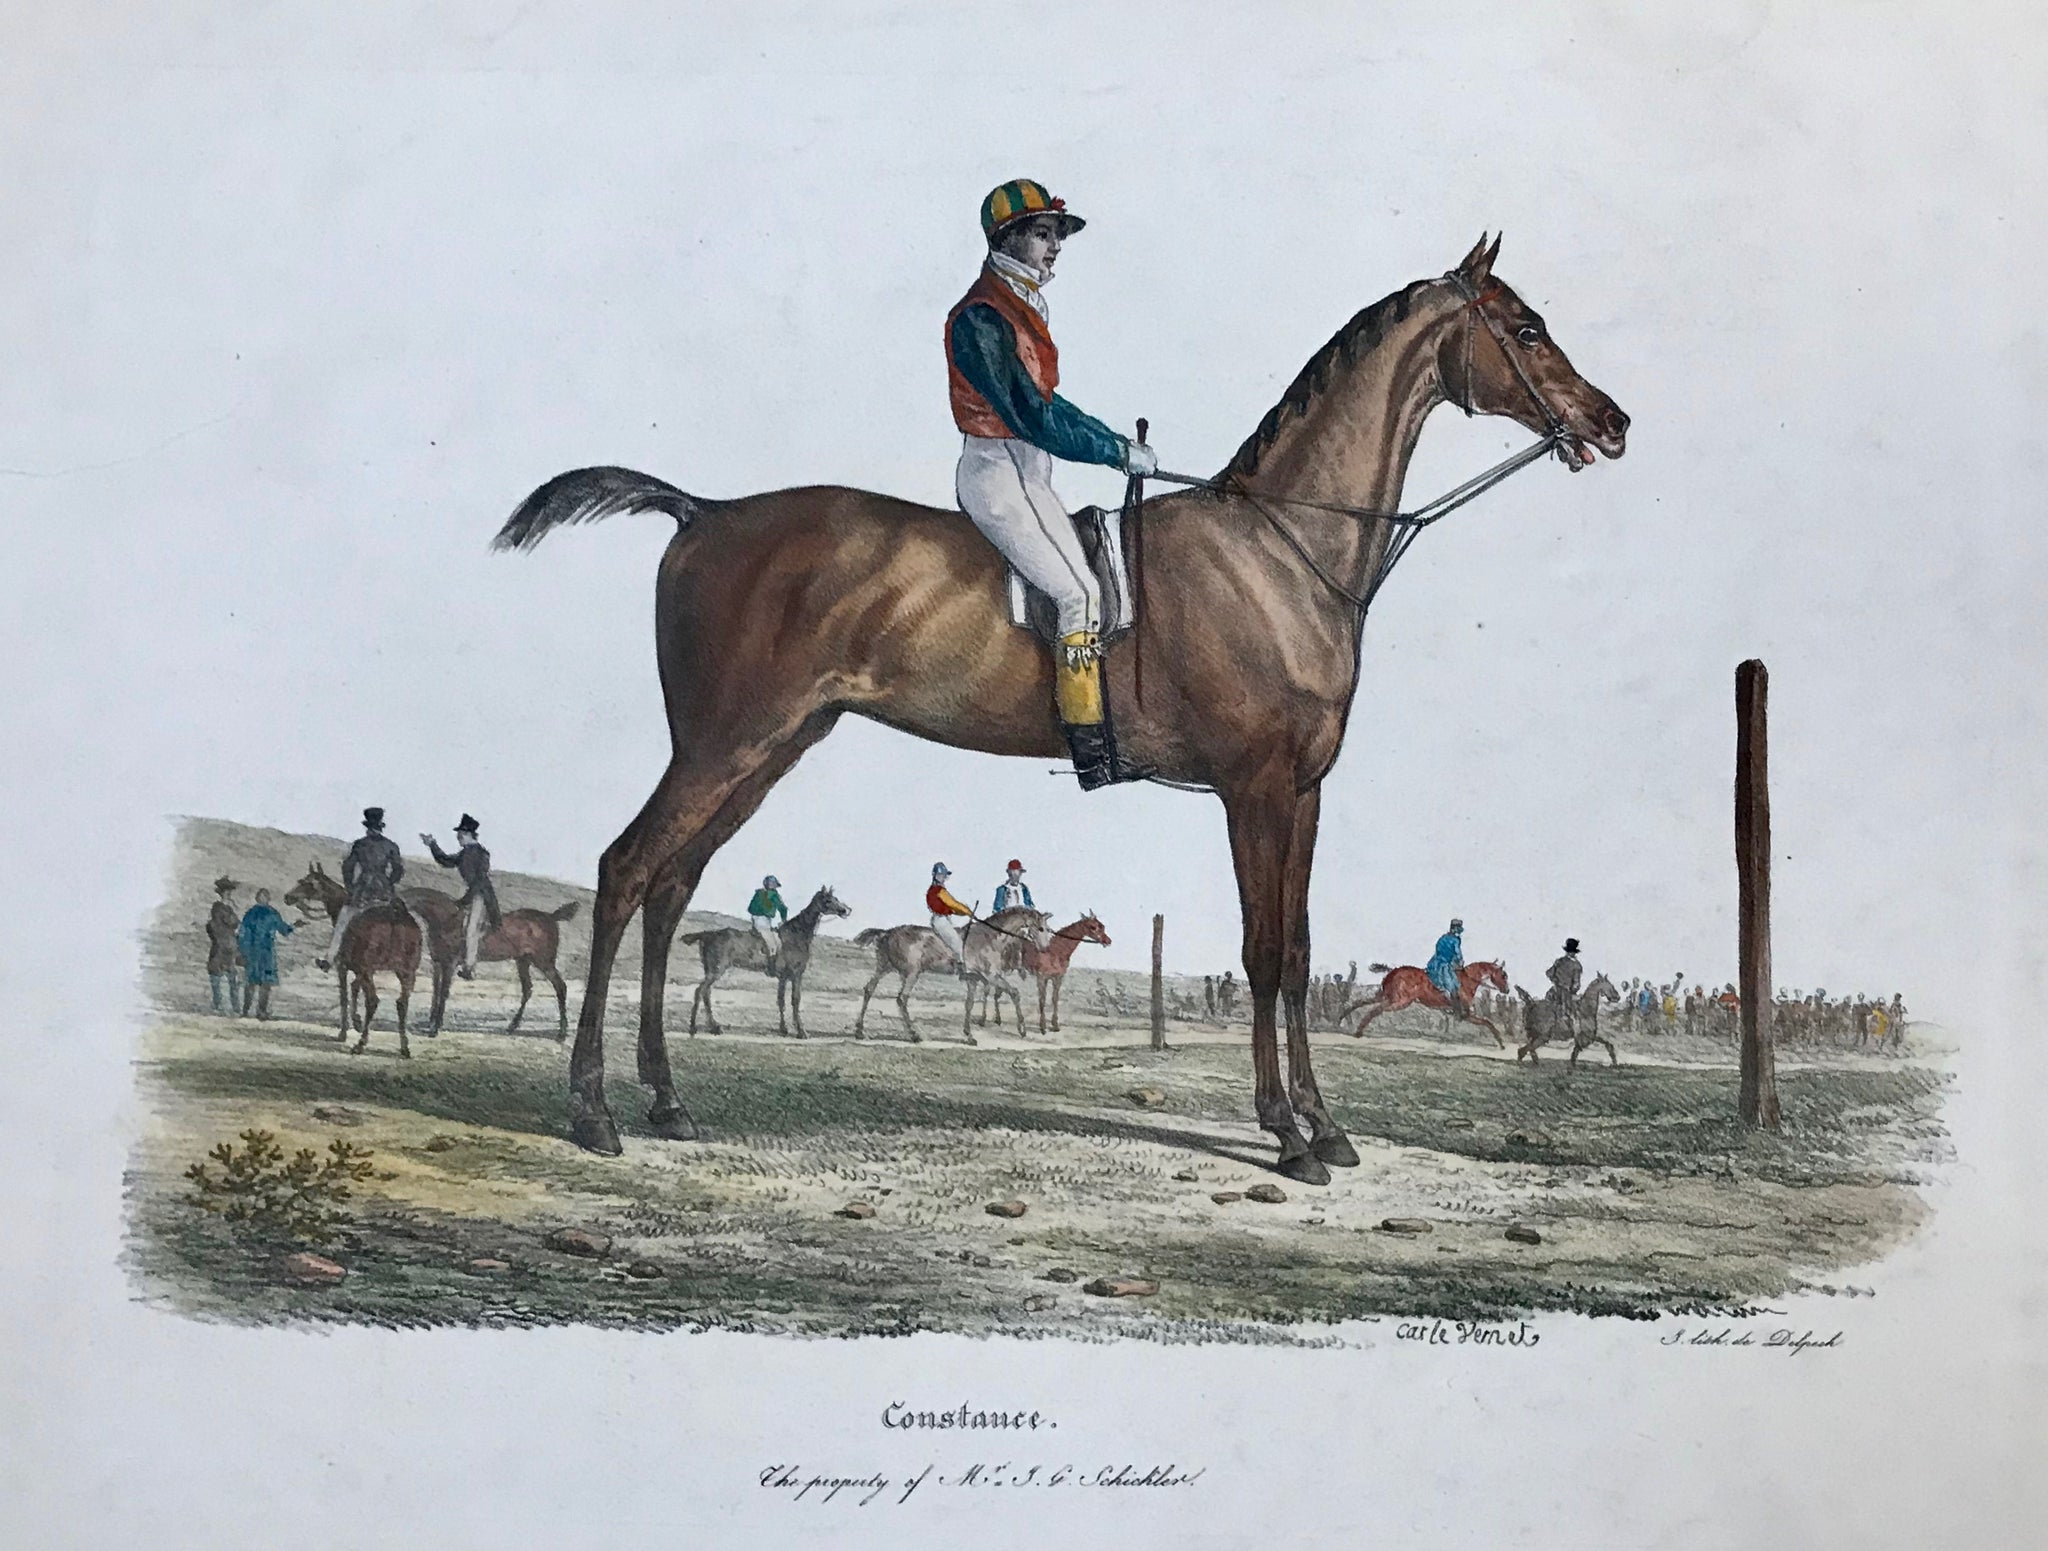 """Constance - The property of Mr. J.G.Schickler""  ""Constance"" with jockey mounted. In the background other race horses  Large folio size hand-colored lithograph by Francois Seraphin Delpech (1778-1825)  After the painting by Carle Vernet (1758-1736)"